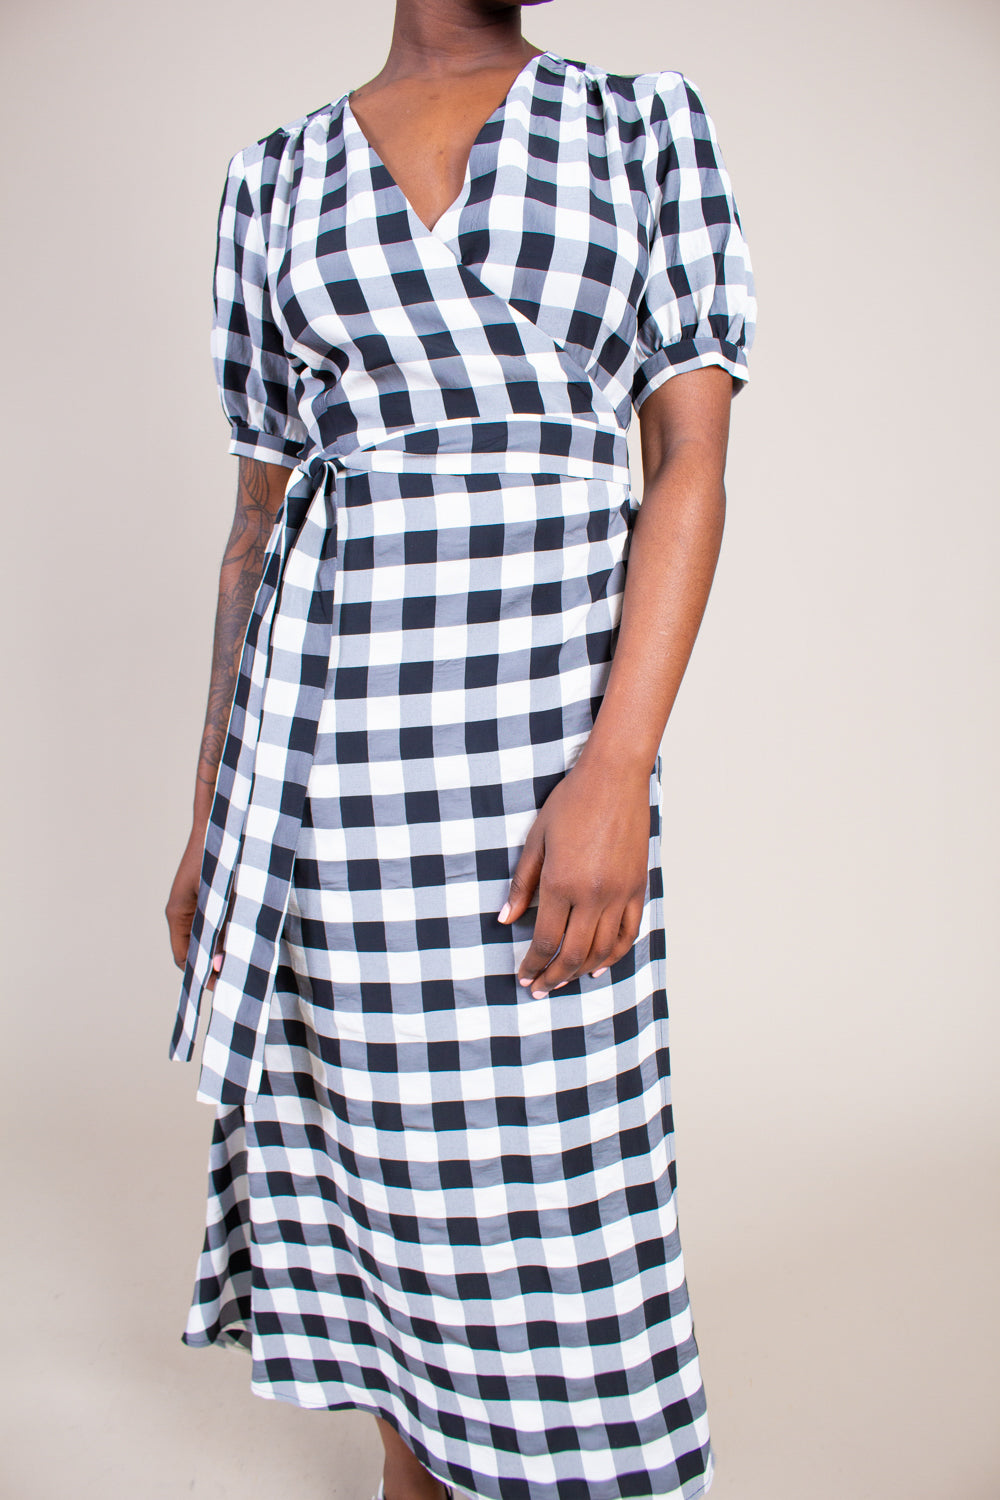 Lucia Dress in Black & White Gingham